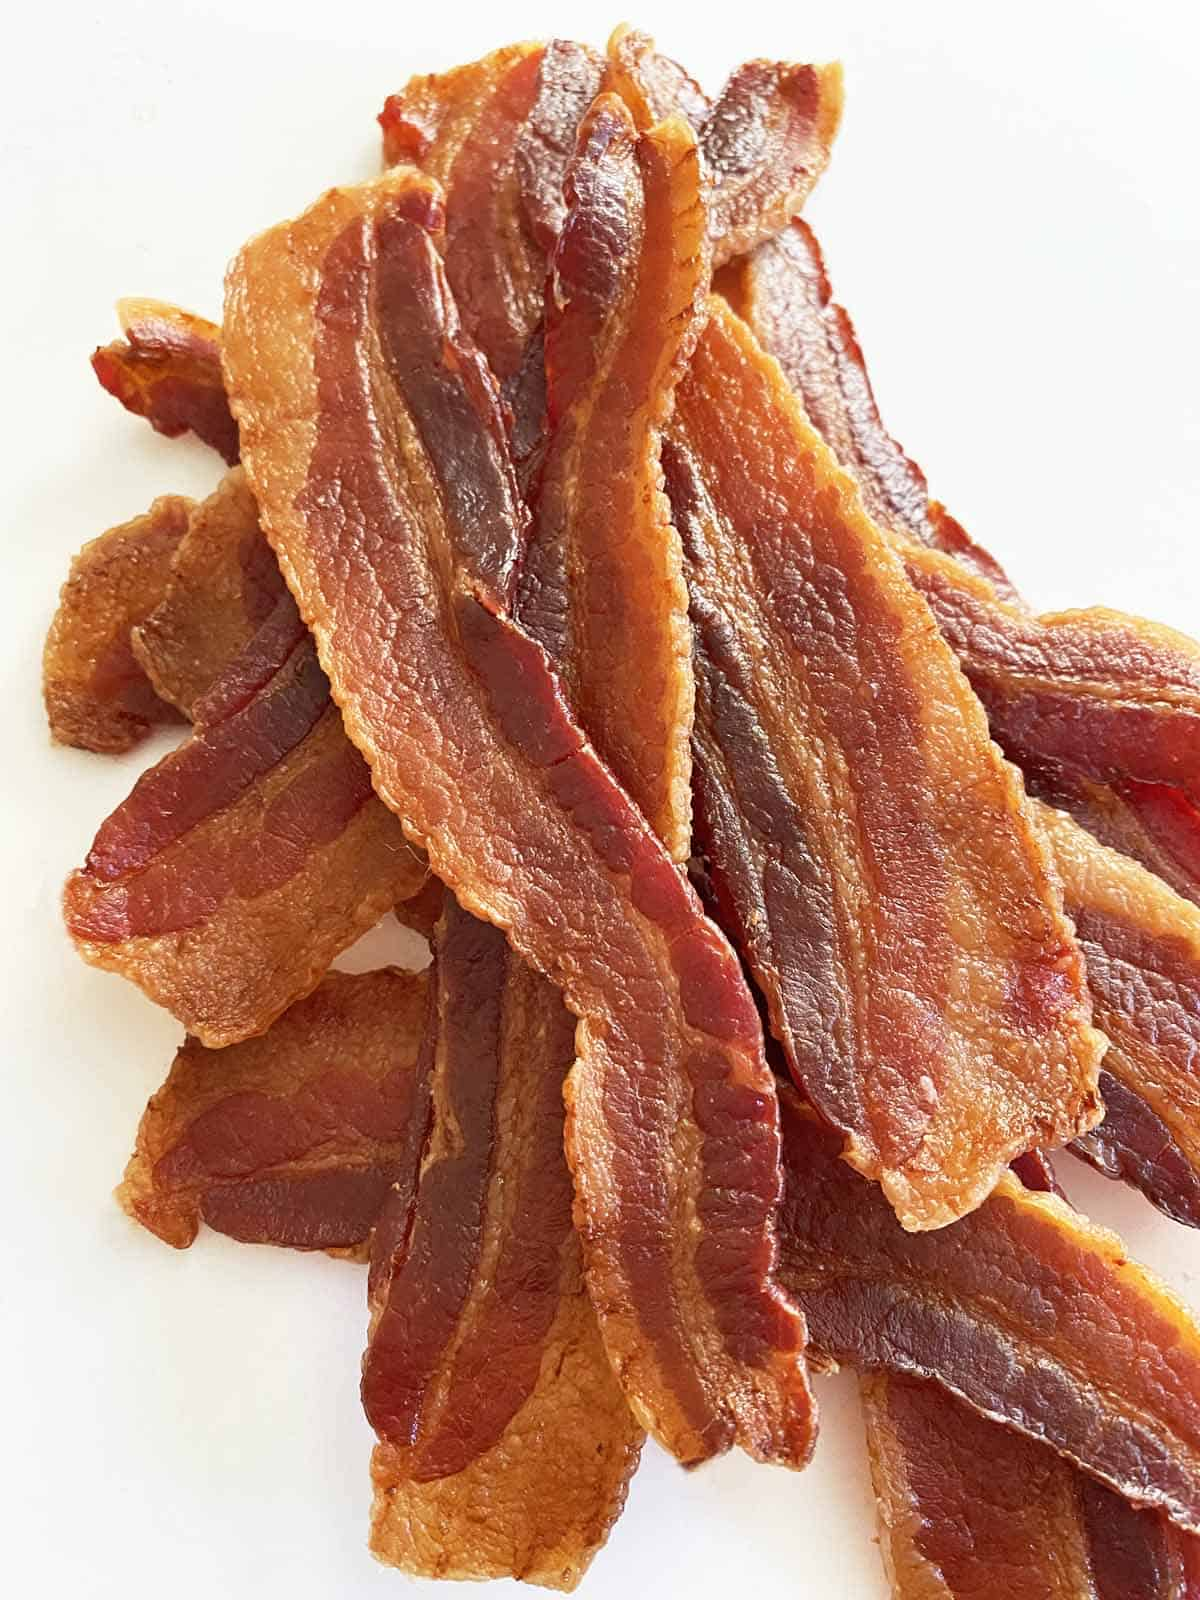 12 pieces of homemade bacon jerky in a pile, on a white background